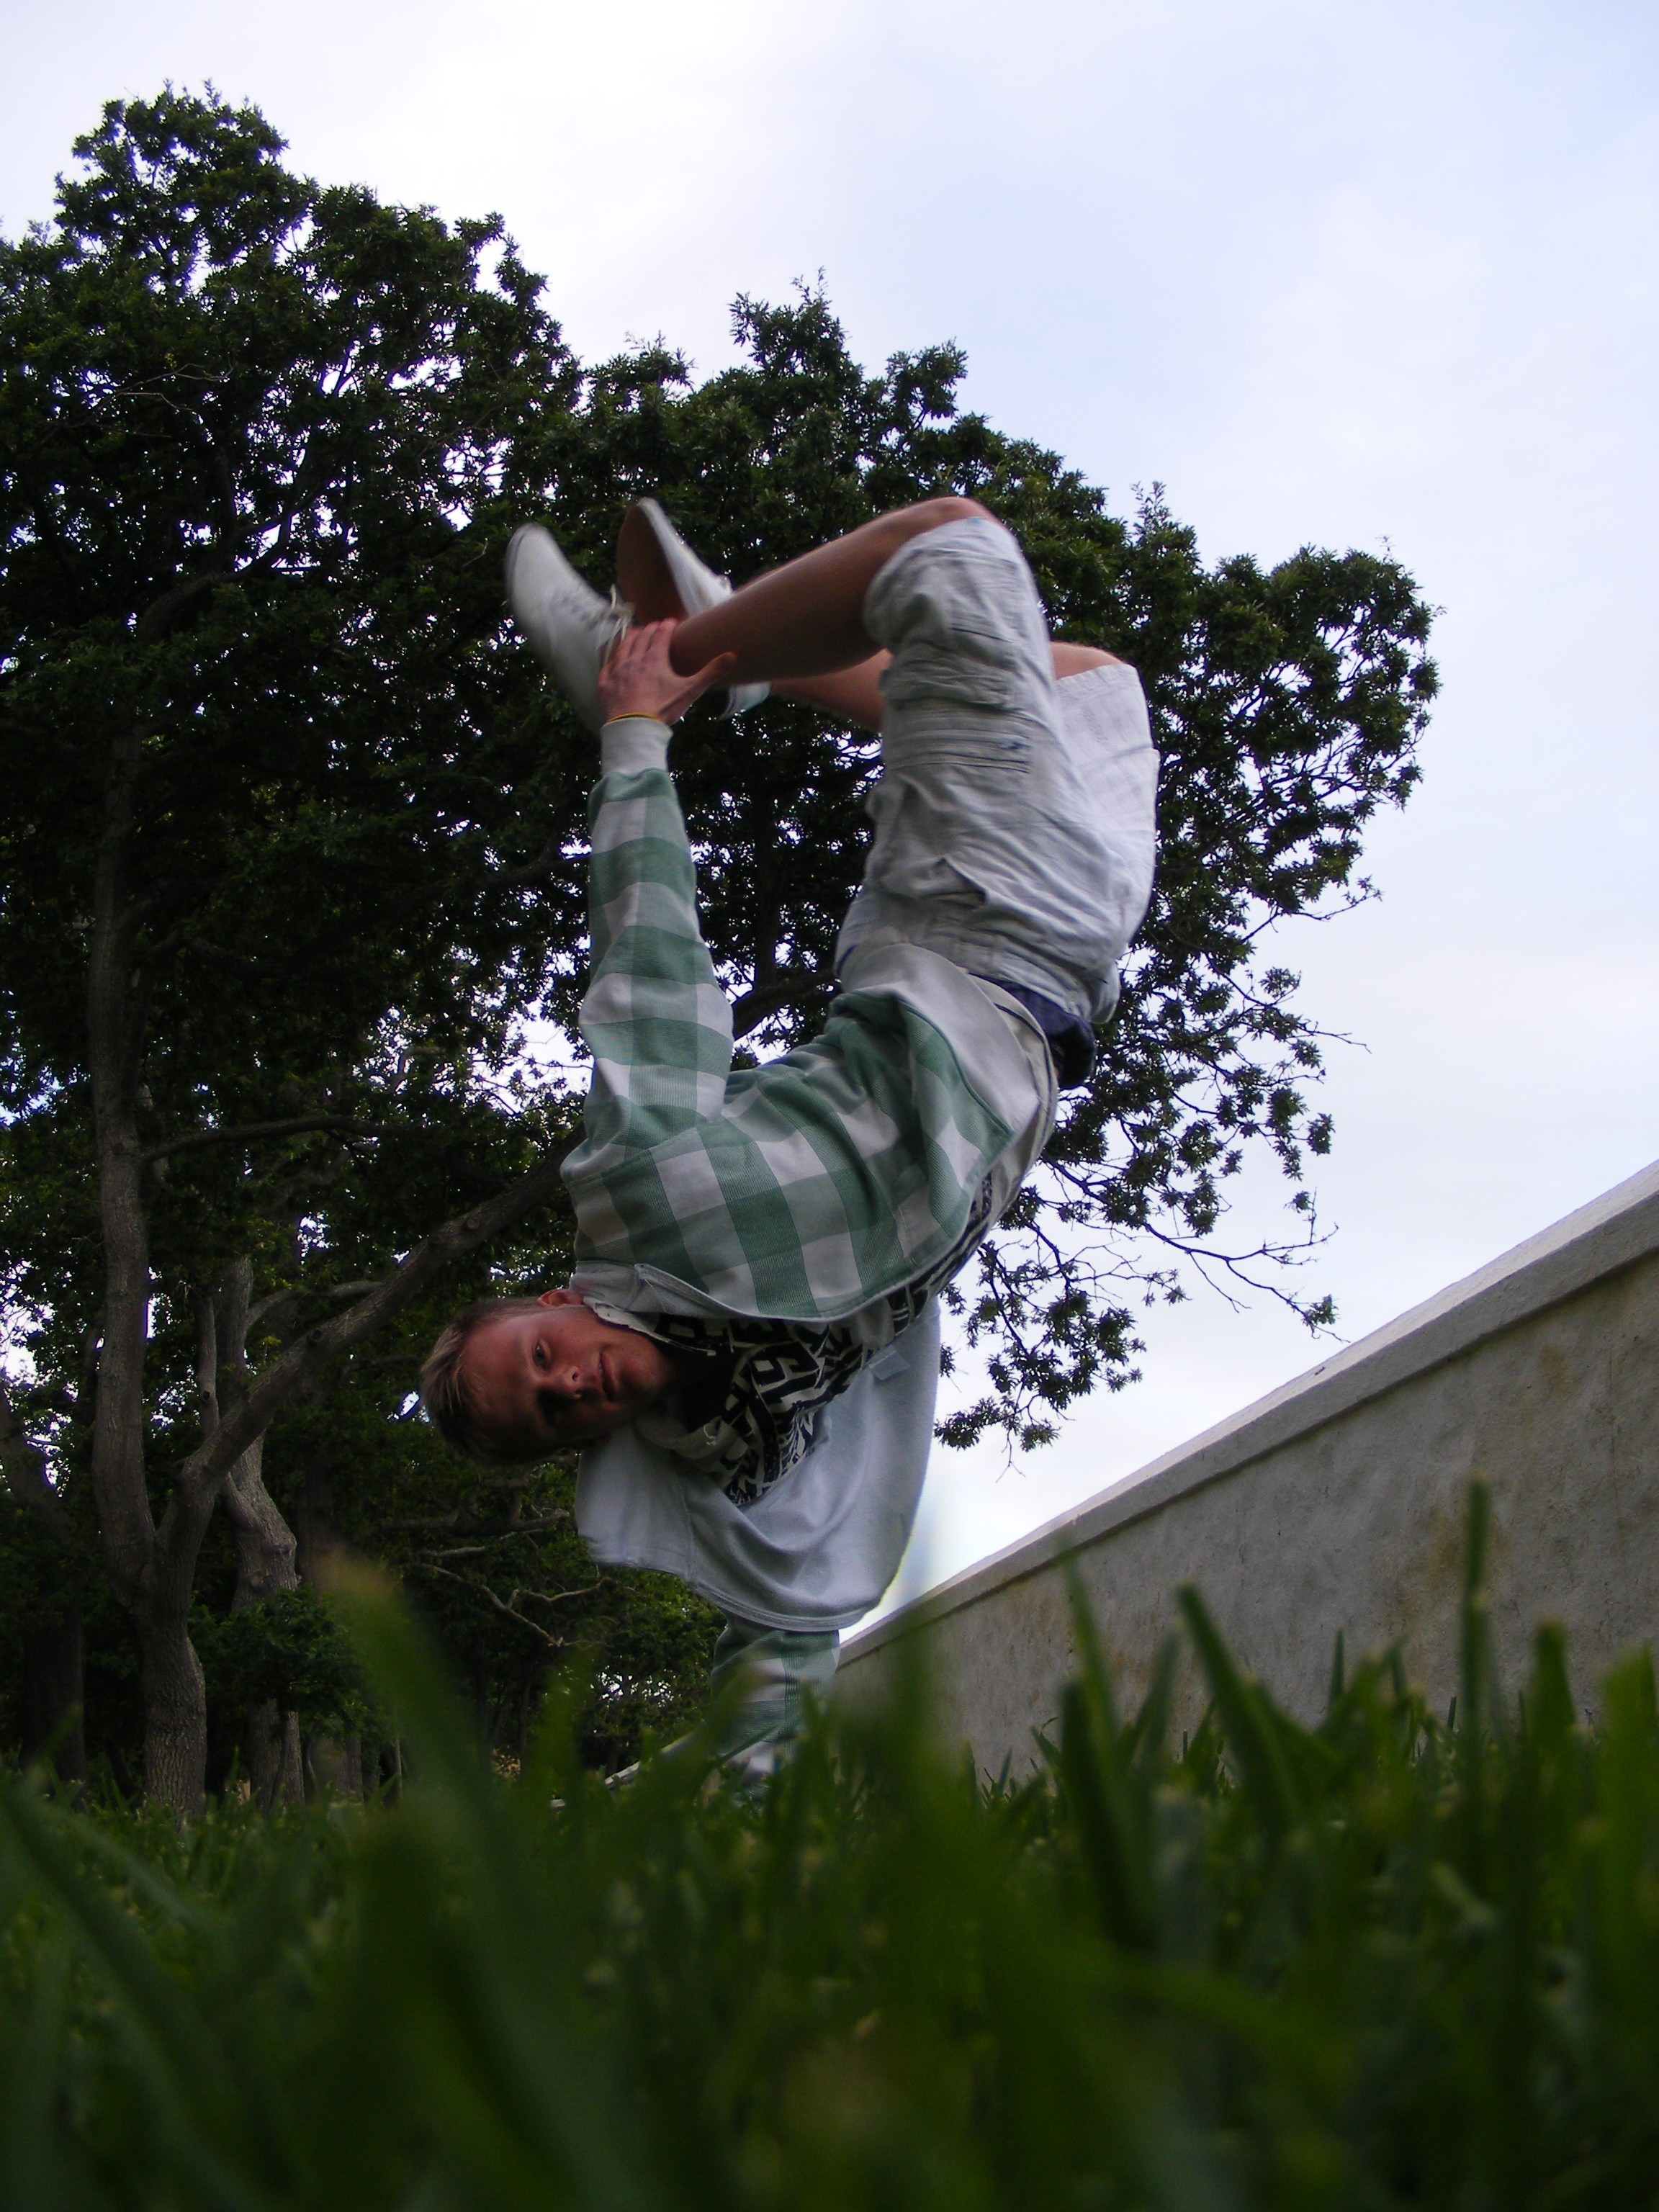 outdoors parkour HD Wallpaper